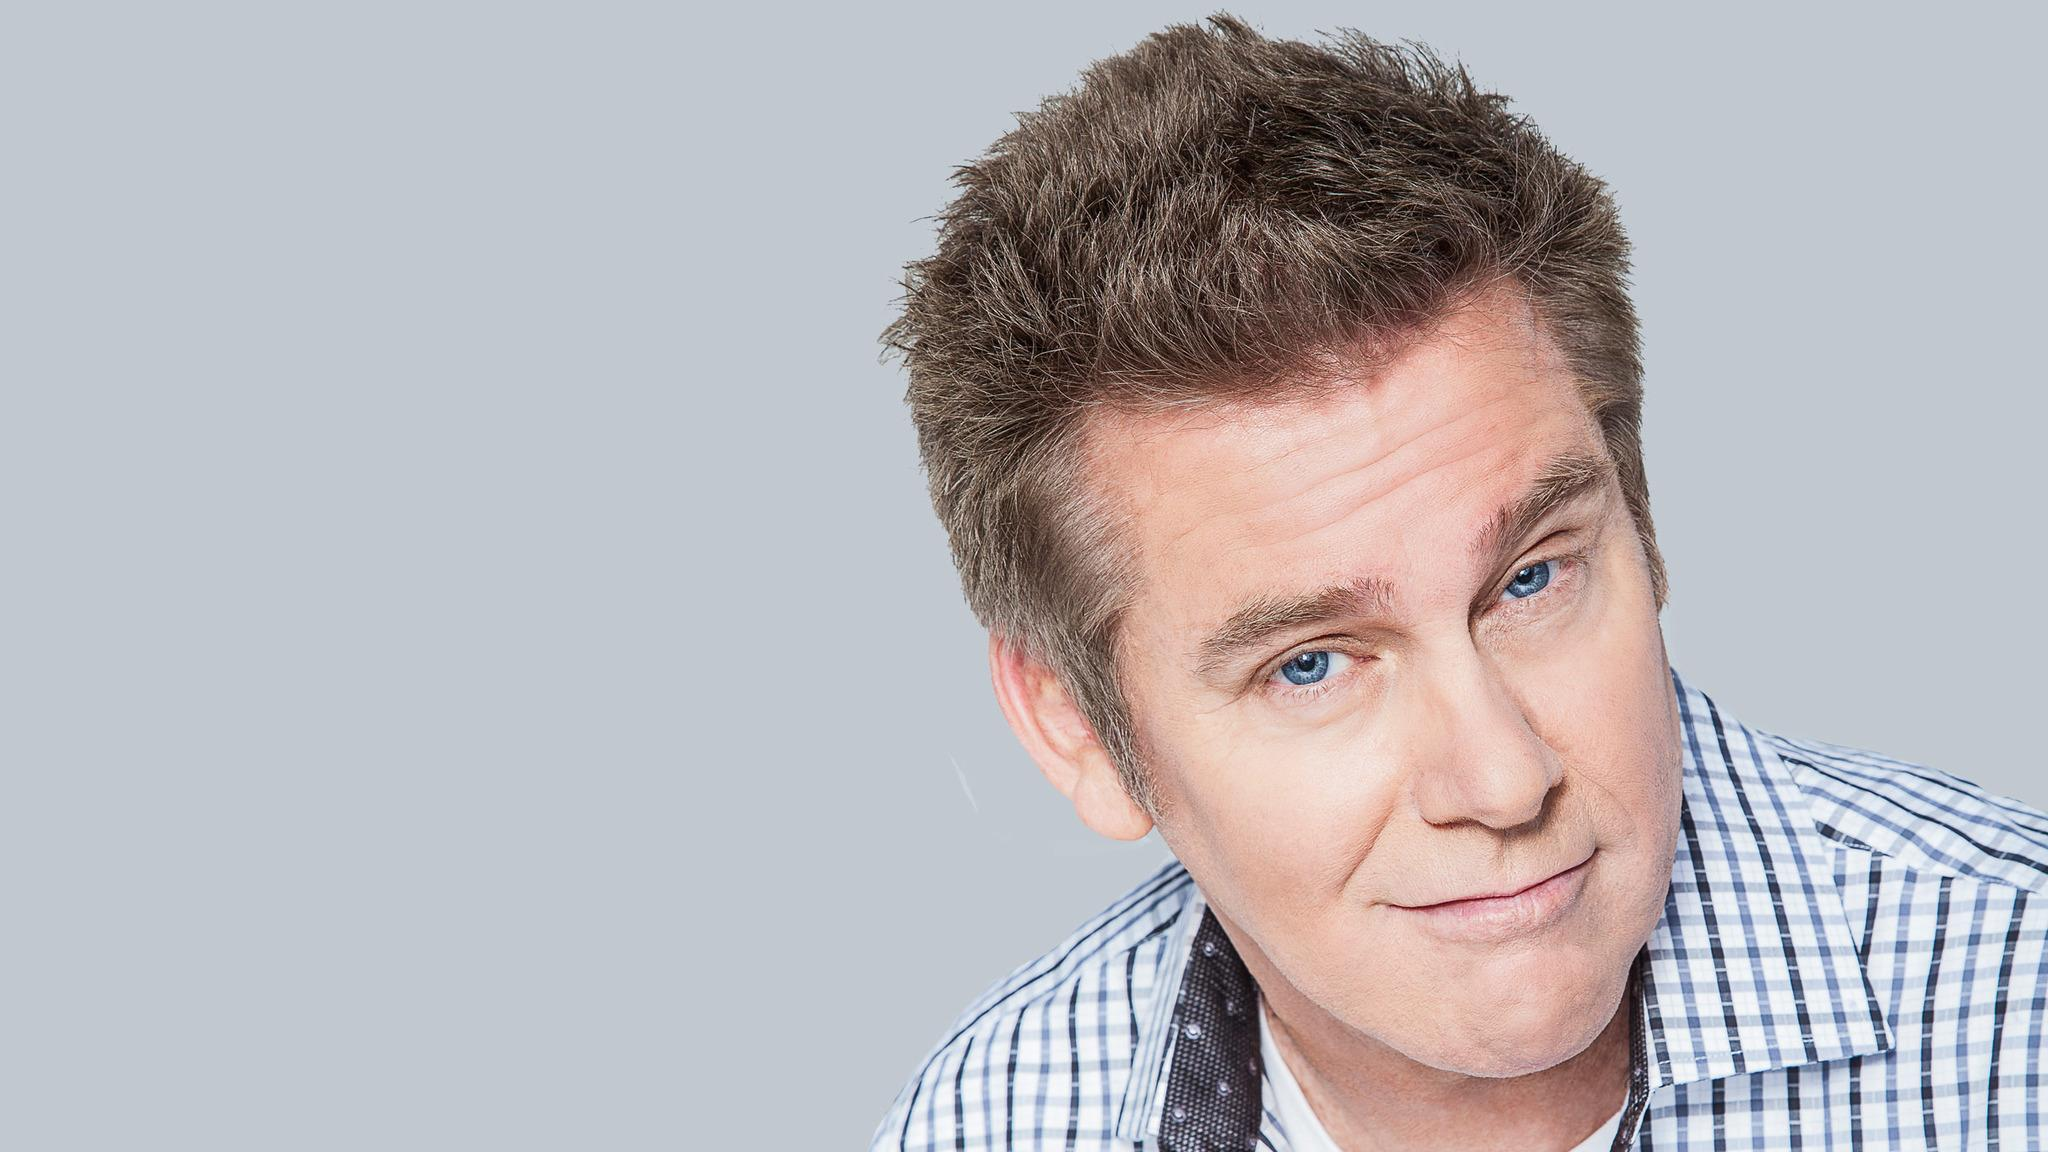 Brian Regan at Castle Performing Arts Center